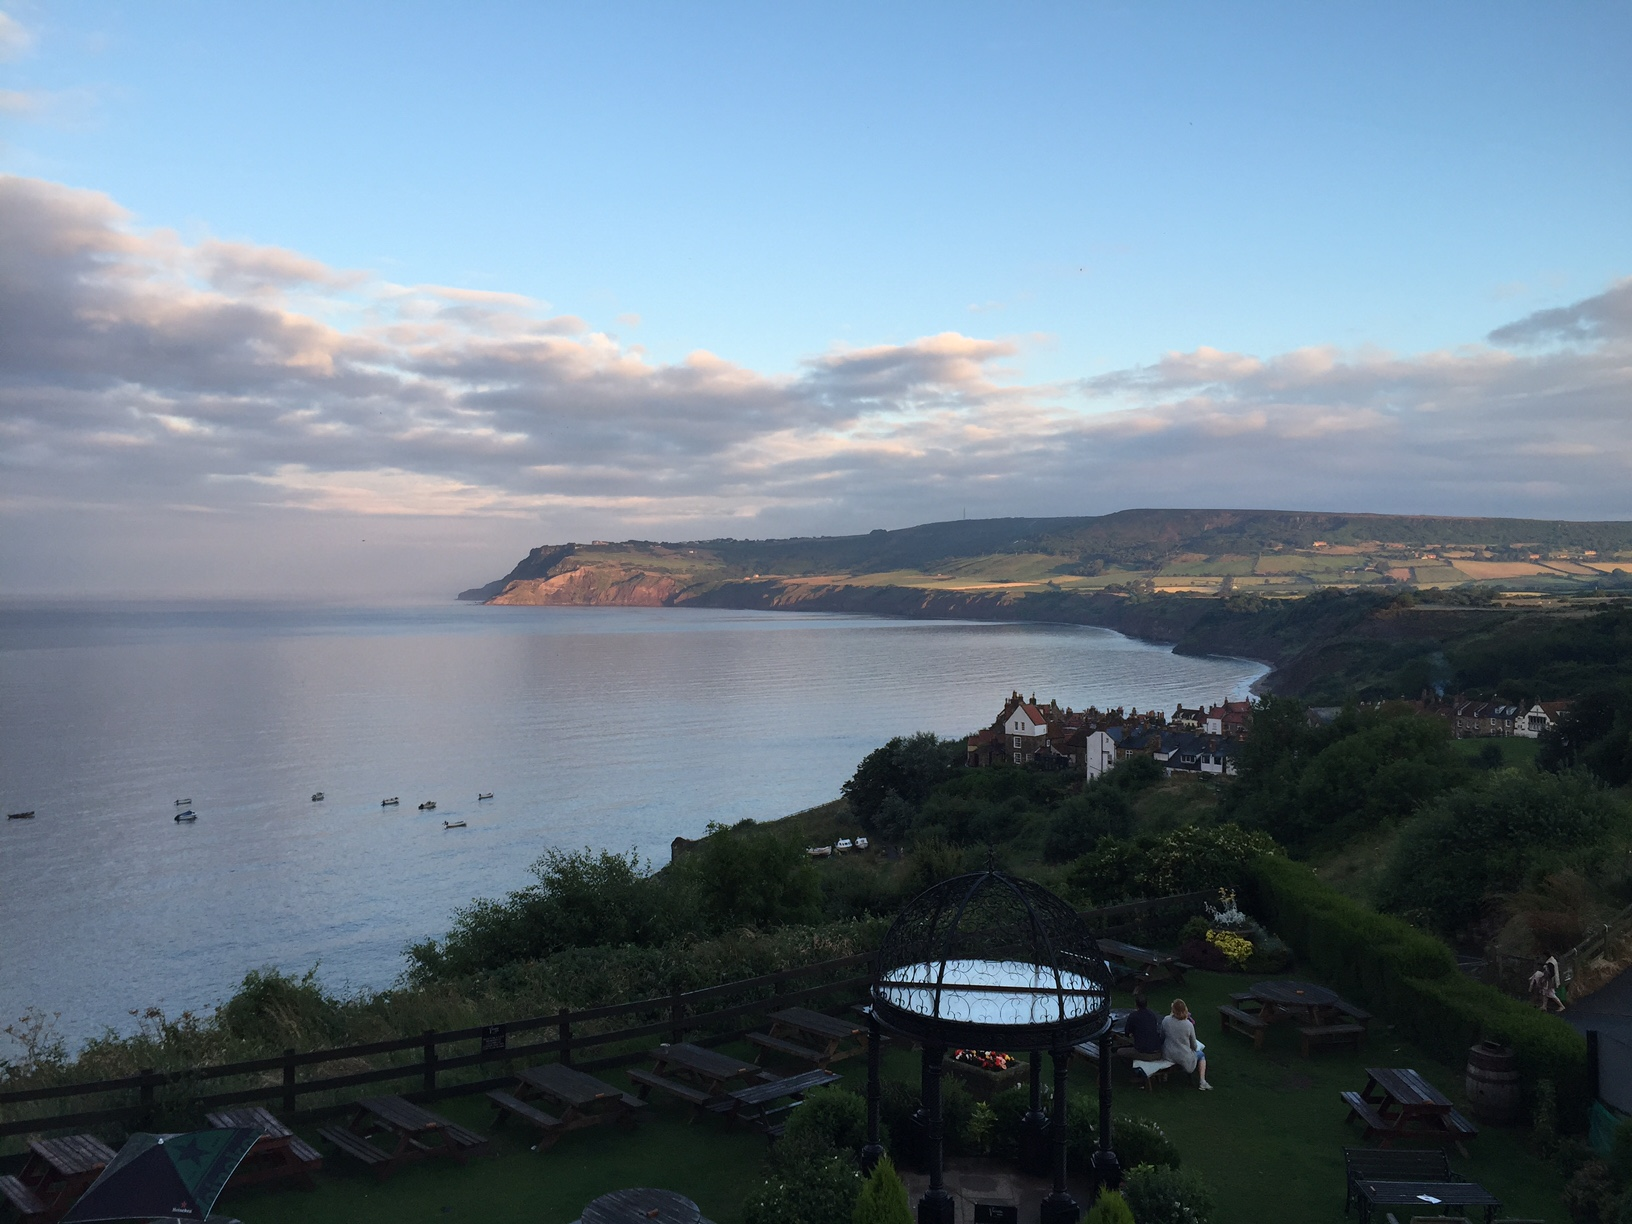 Robin Hood's Bay at Sunset